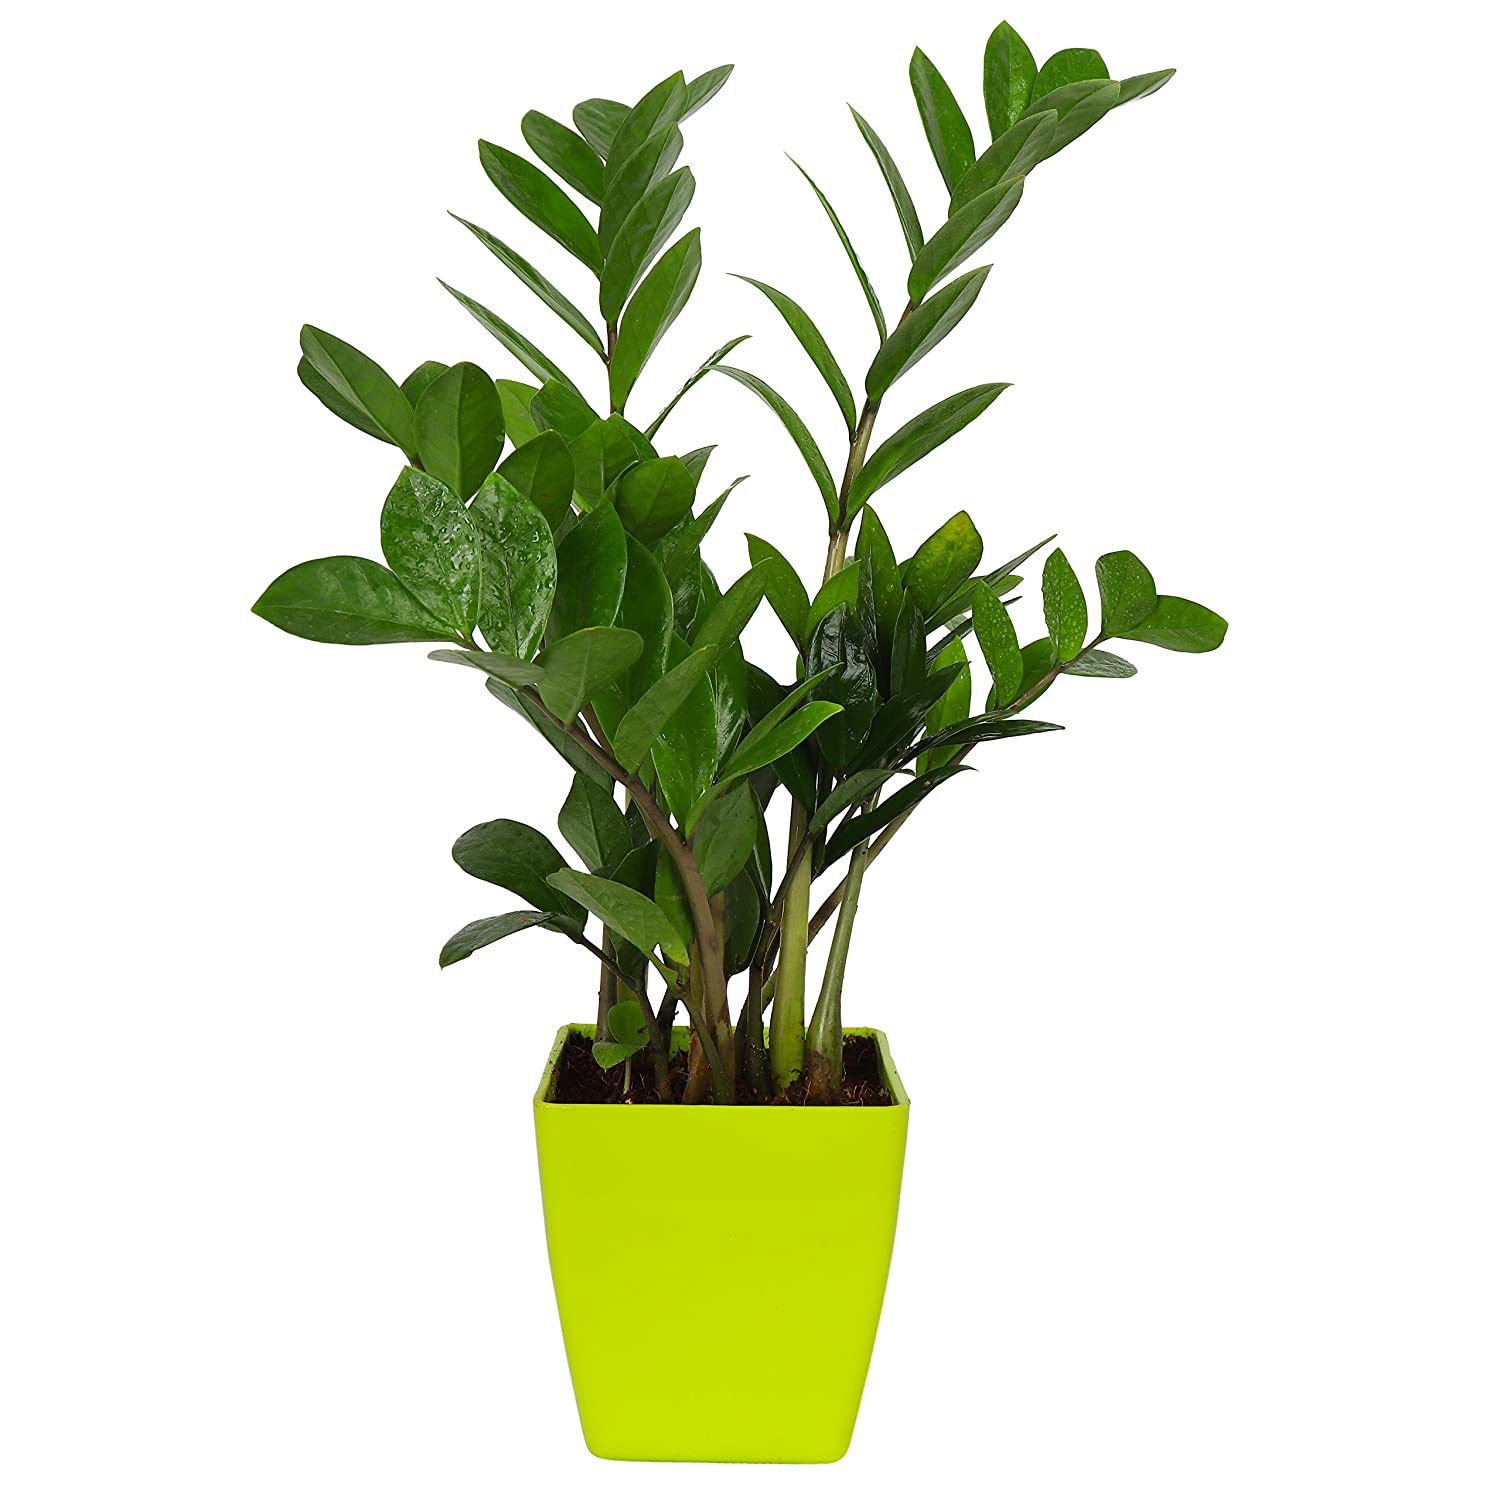 Zaavic Zamia Plant in Yellow Plastic Pot for Decor, Green ... on zinnia house plant, olearia house plant, lantana house plant, amaranthus house plant, croton house plant, plumeria house plant, bamboo house plant, sansevieria house plant, aralia house plant, ficus house plant, magnolia house plant, iris house plant, camellia house plant, gardenia house plant, cyclamen house plant, alocasia house plant, sedum house plant, coleus house plant, ardisia house plant, acacia house plant,